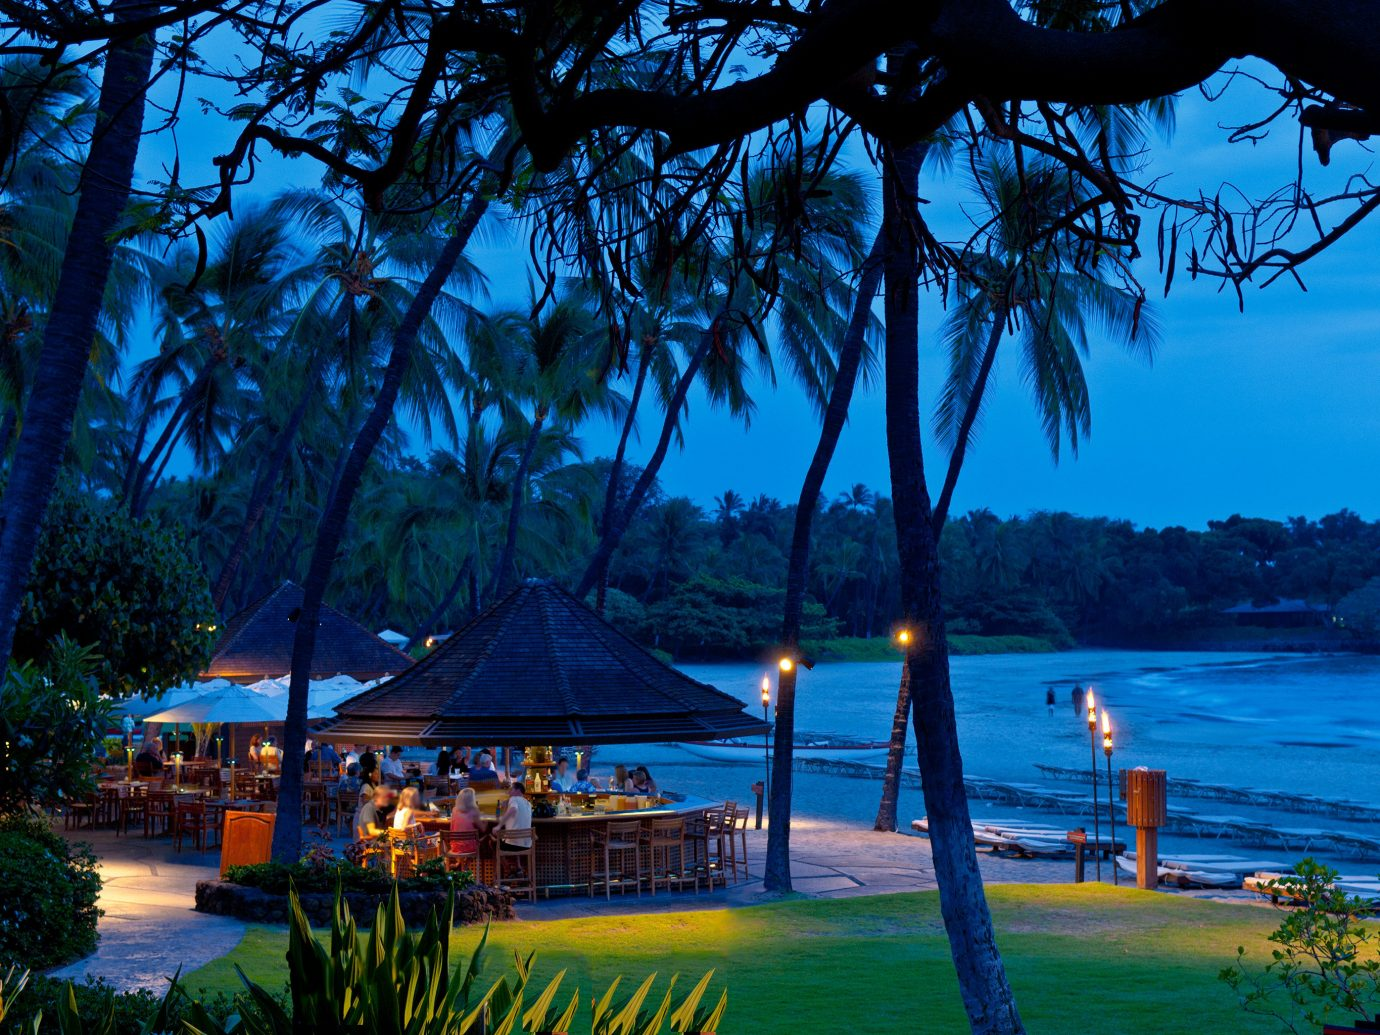 Bar Beach Beachfront Drink Jetsetter Guides Lounge Nightlife Ocean Resort Scenic views tree outdoor water body of water River arecales tropics Sea overlooking plant lined shore